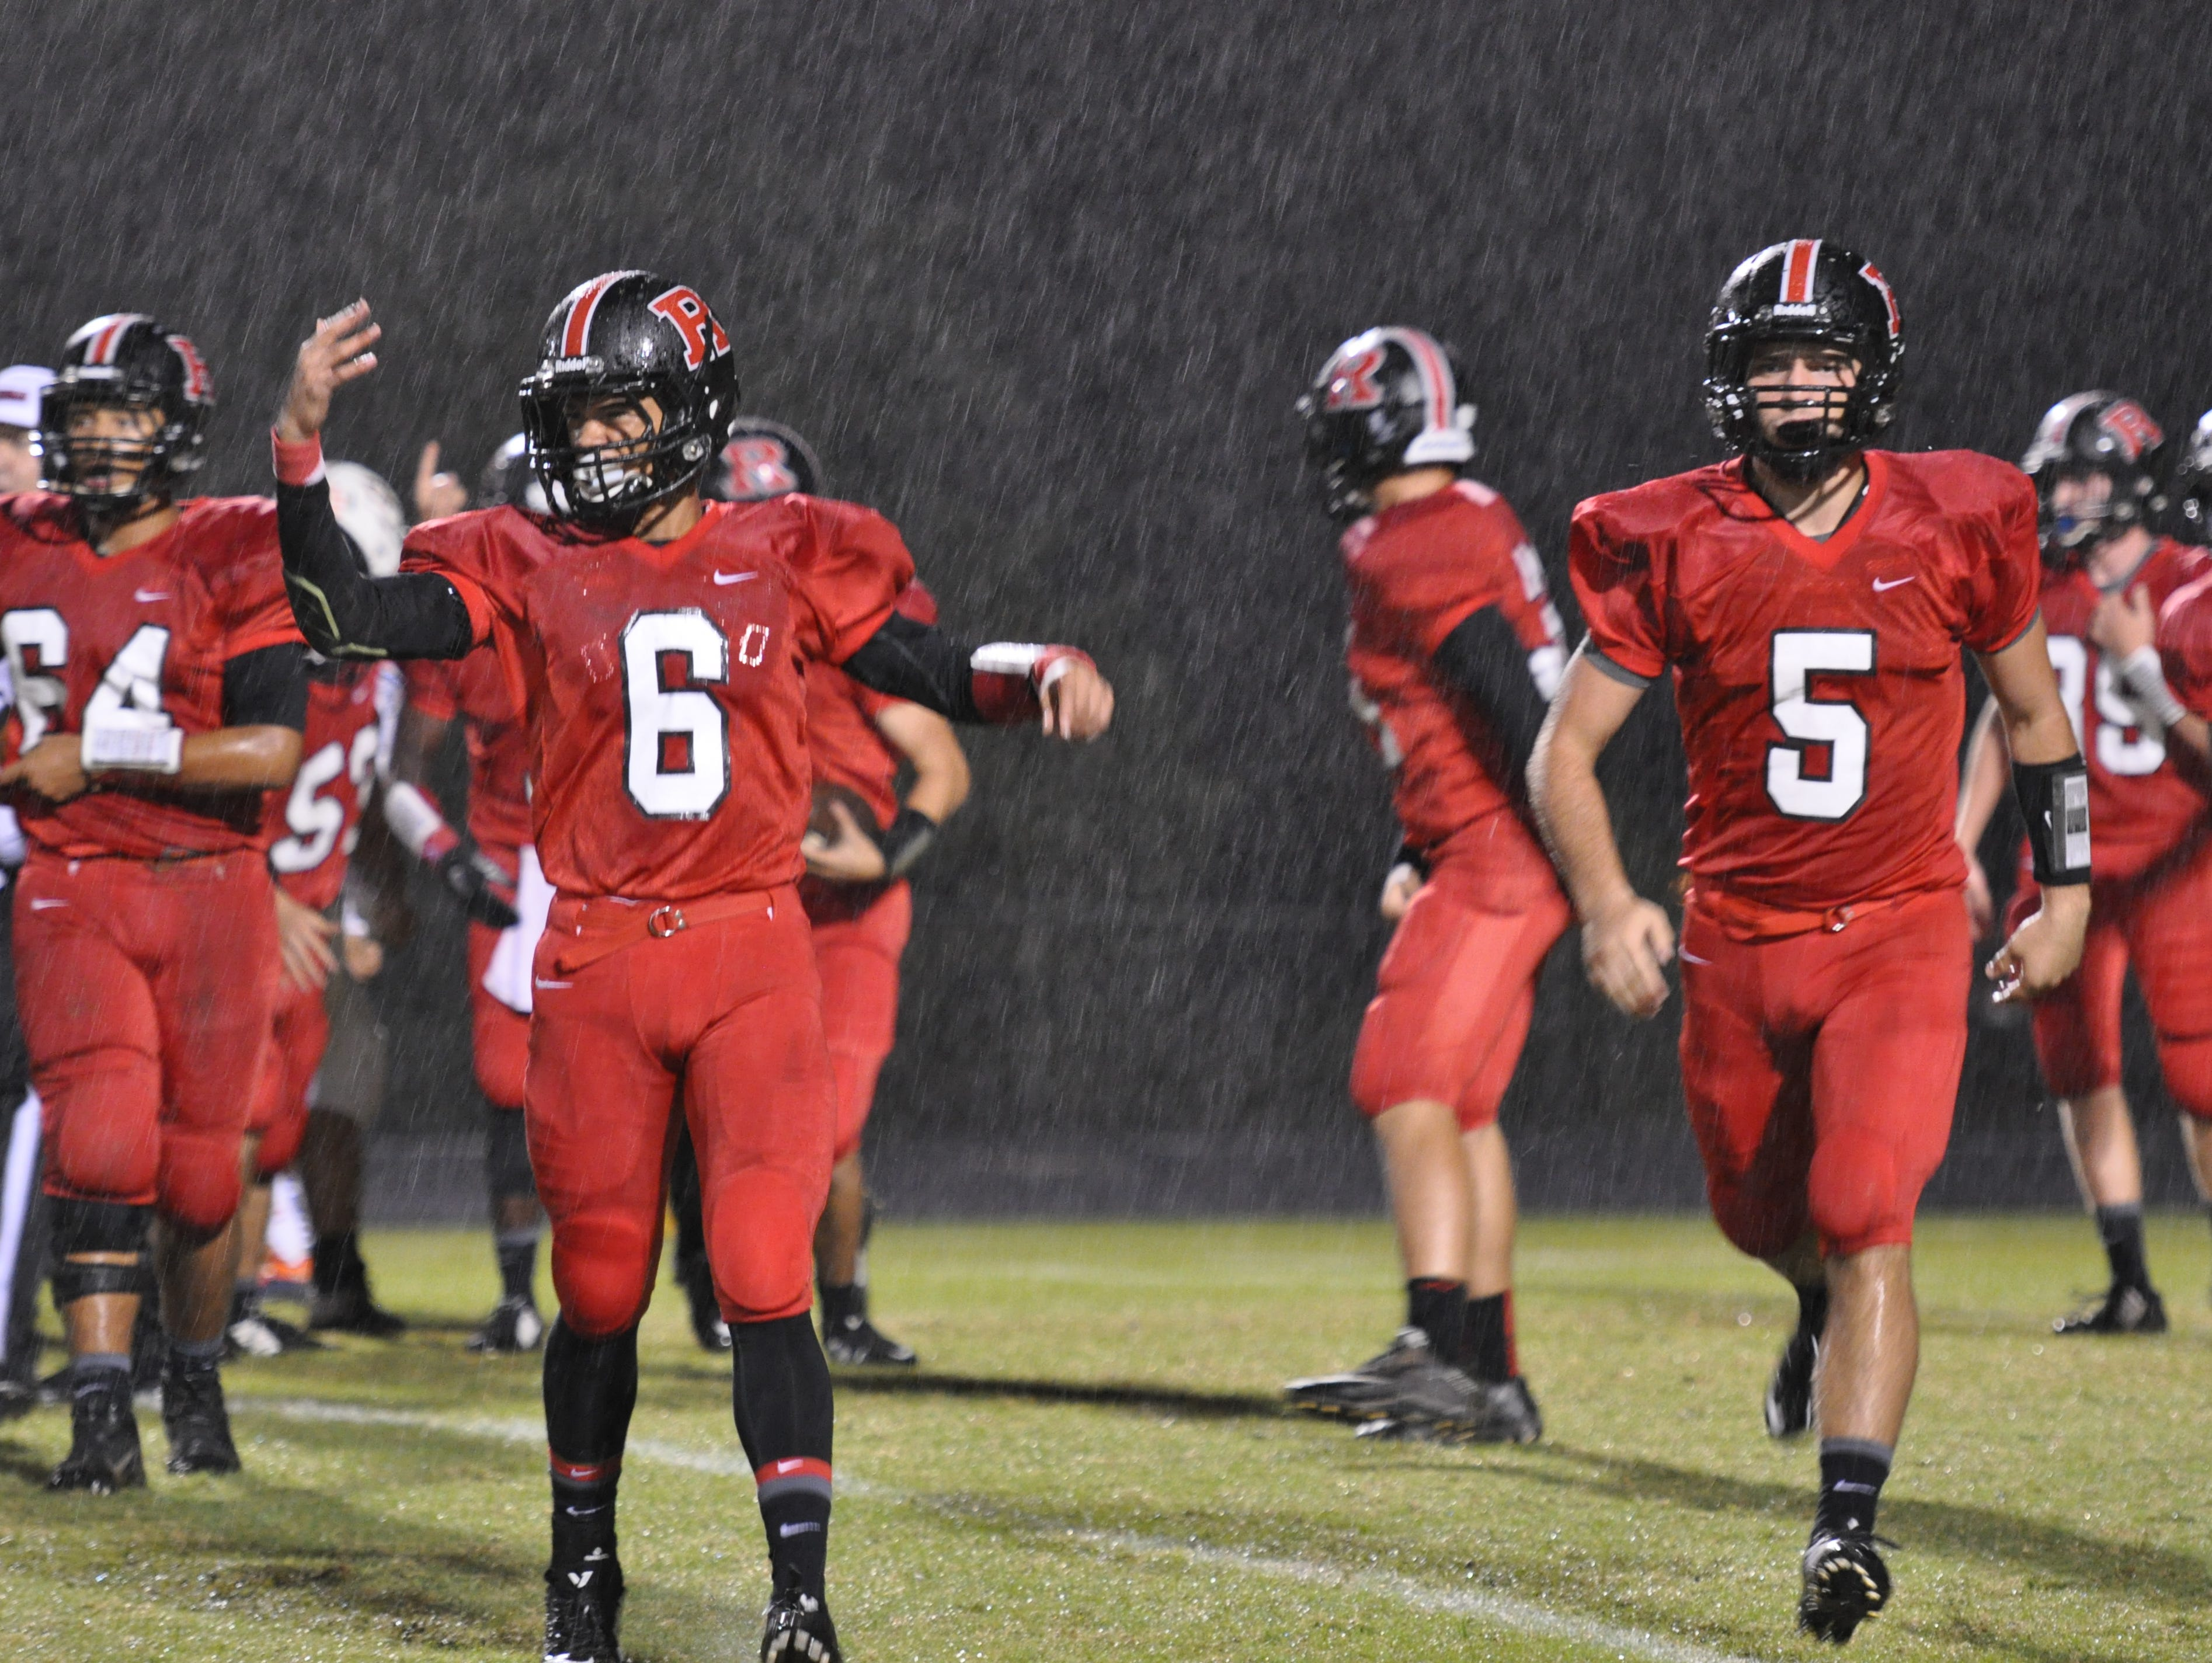 Rossview's Muncie Prater (No. 6) celebrates the Hawks recovery of a fumble early in the 12-7 homecoming win.